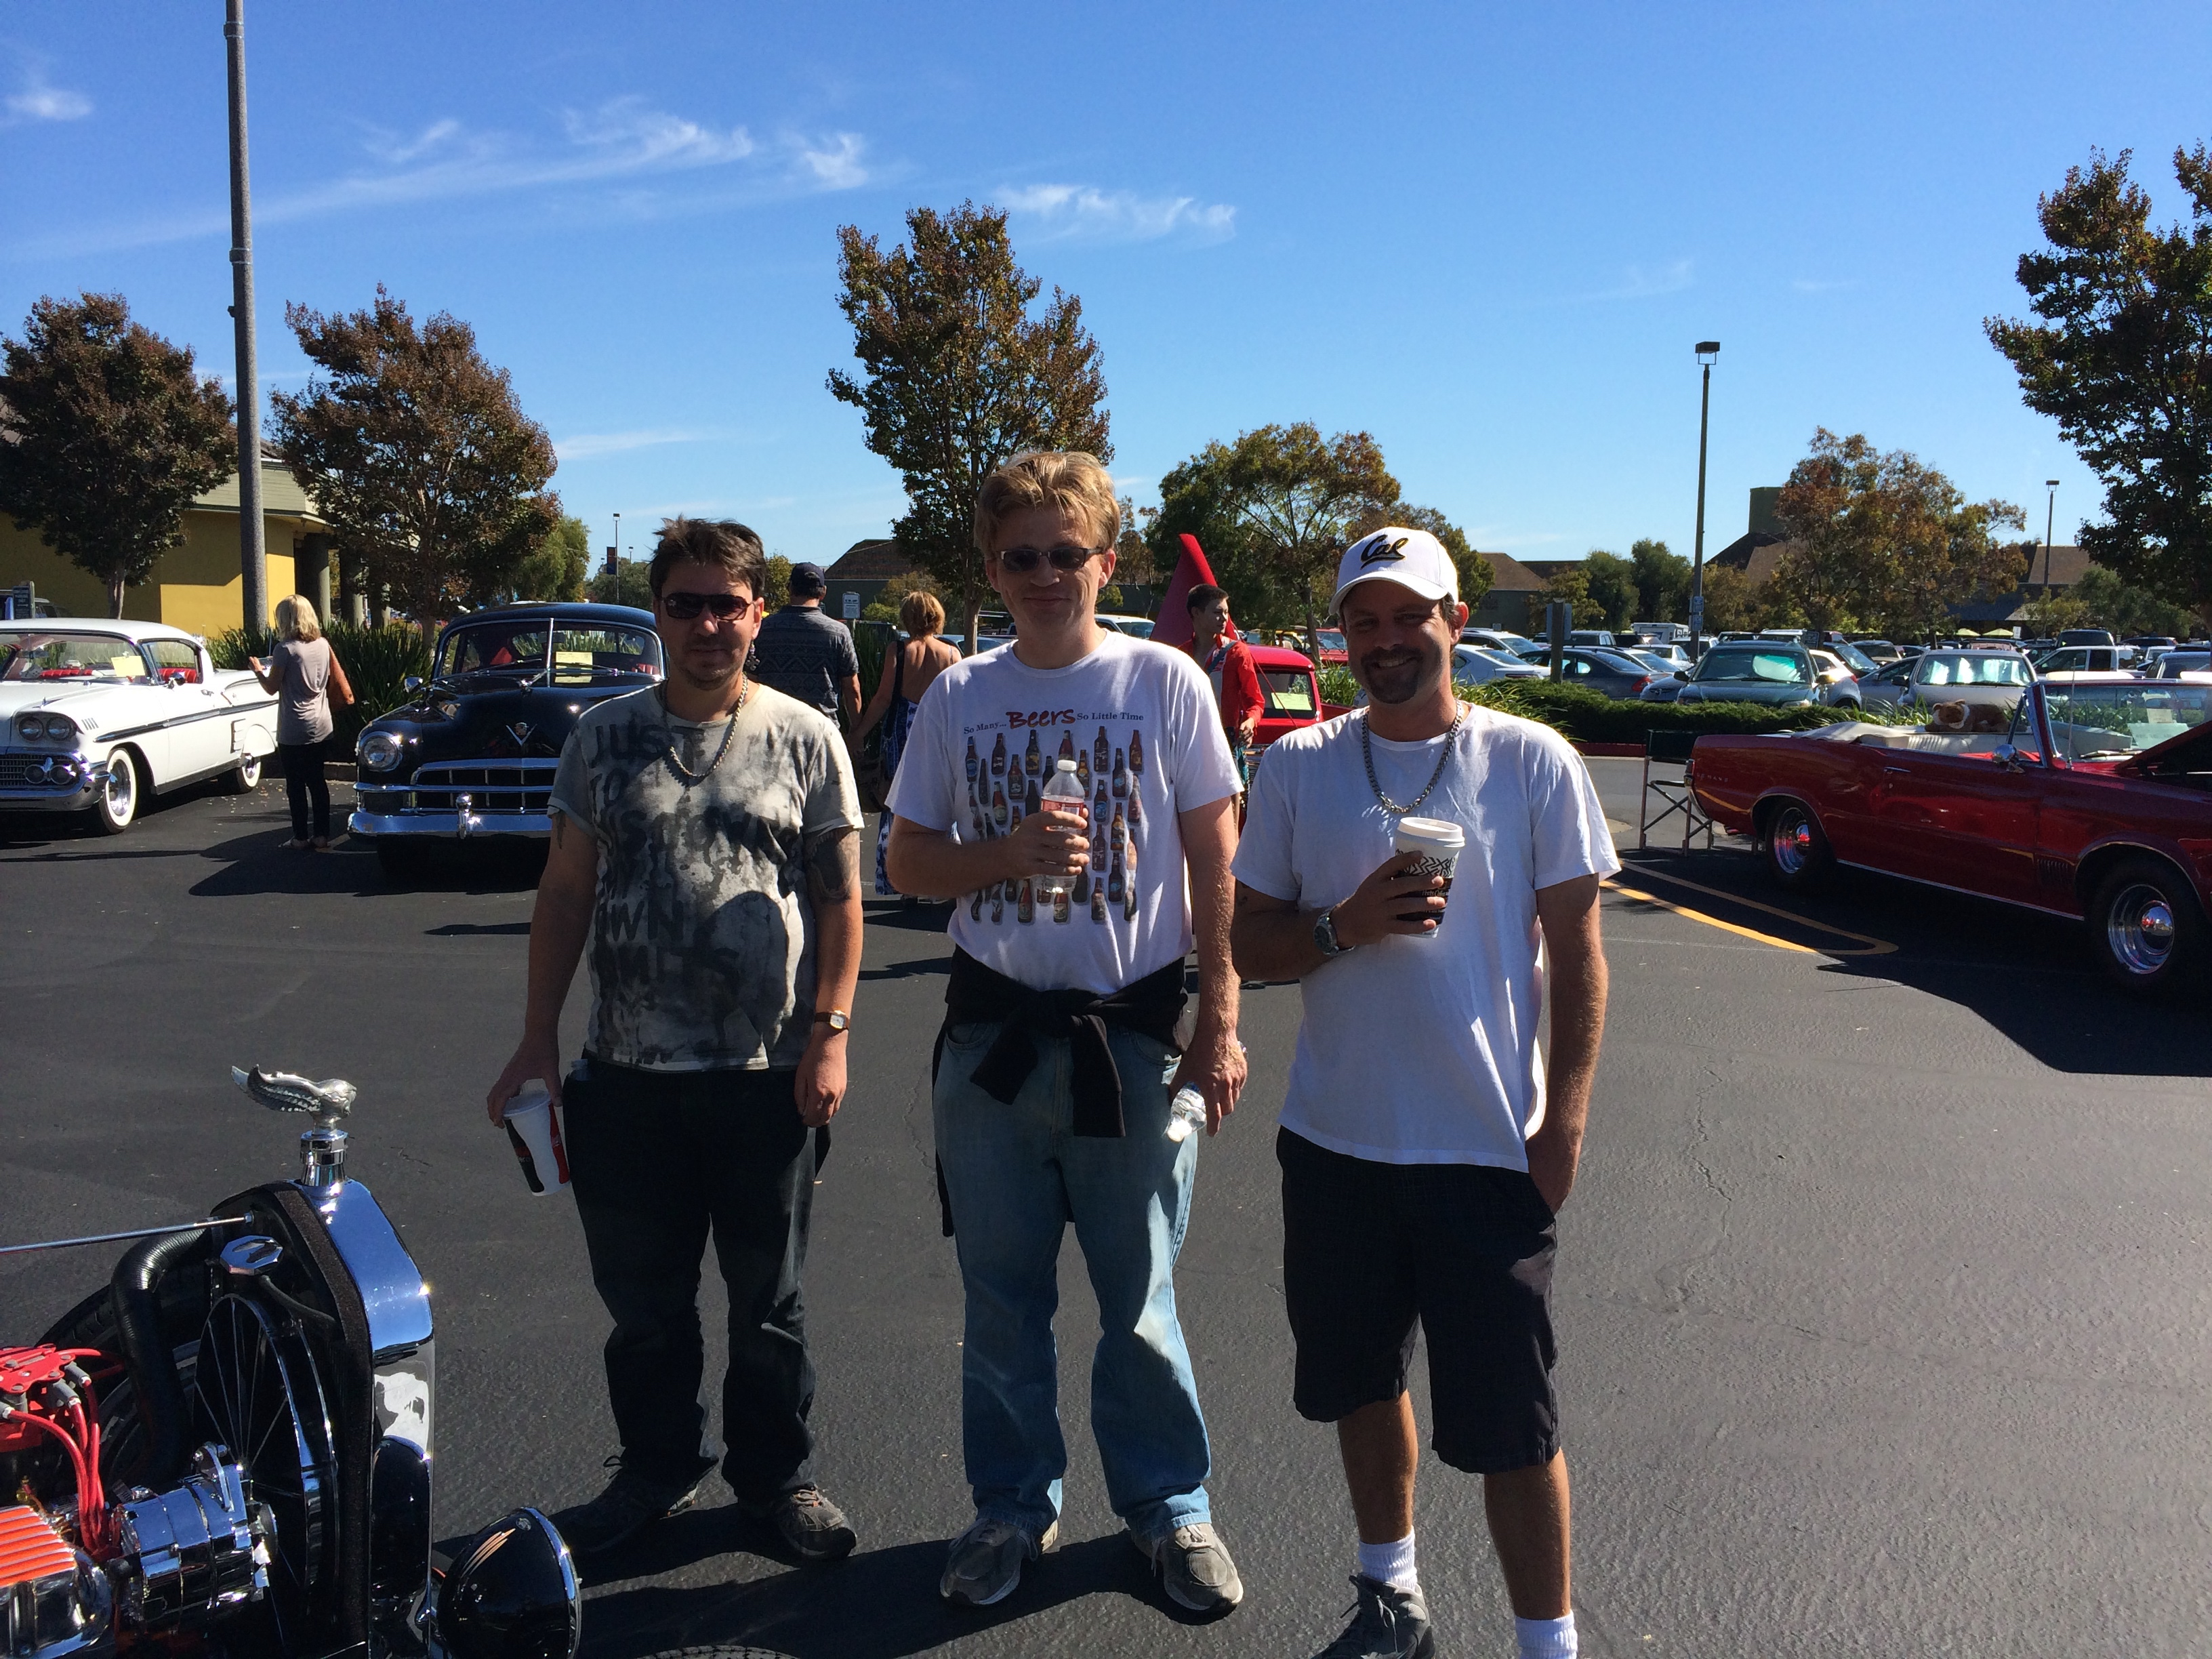 The guys at Greenbrae car show